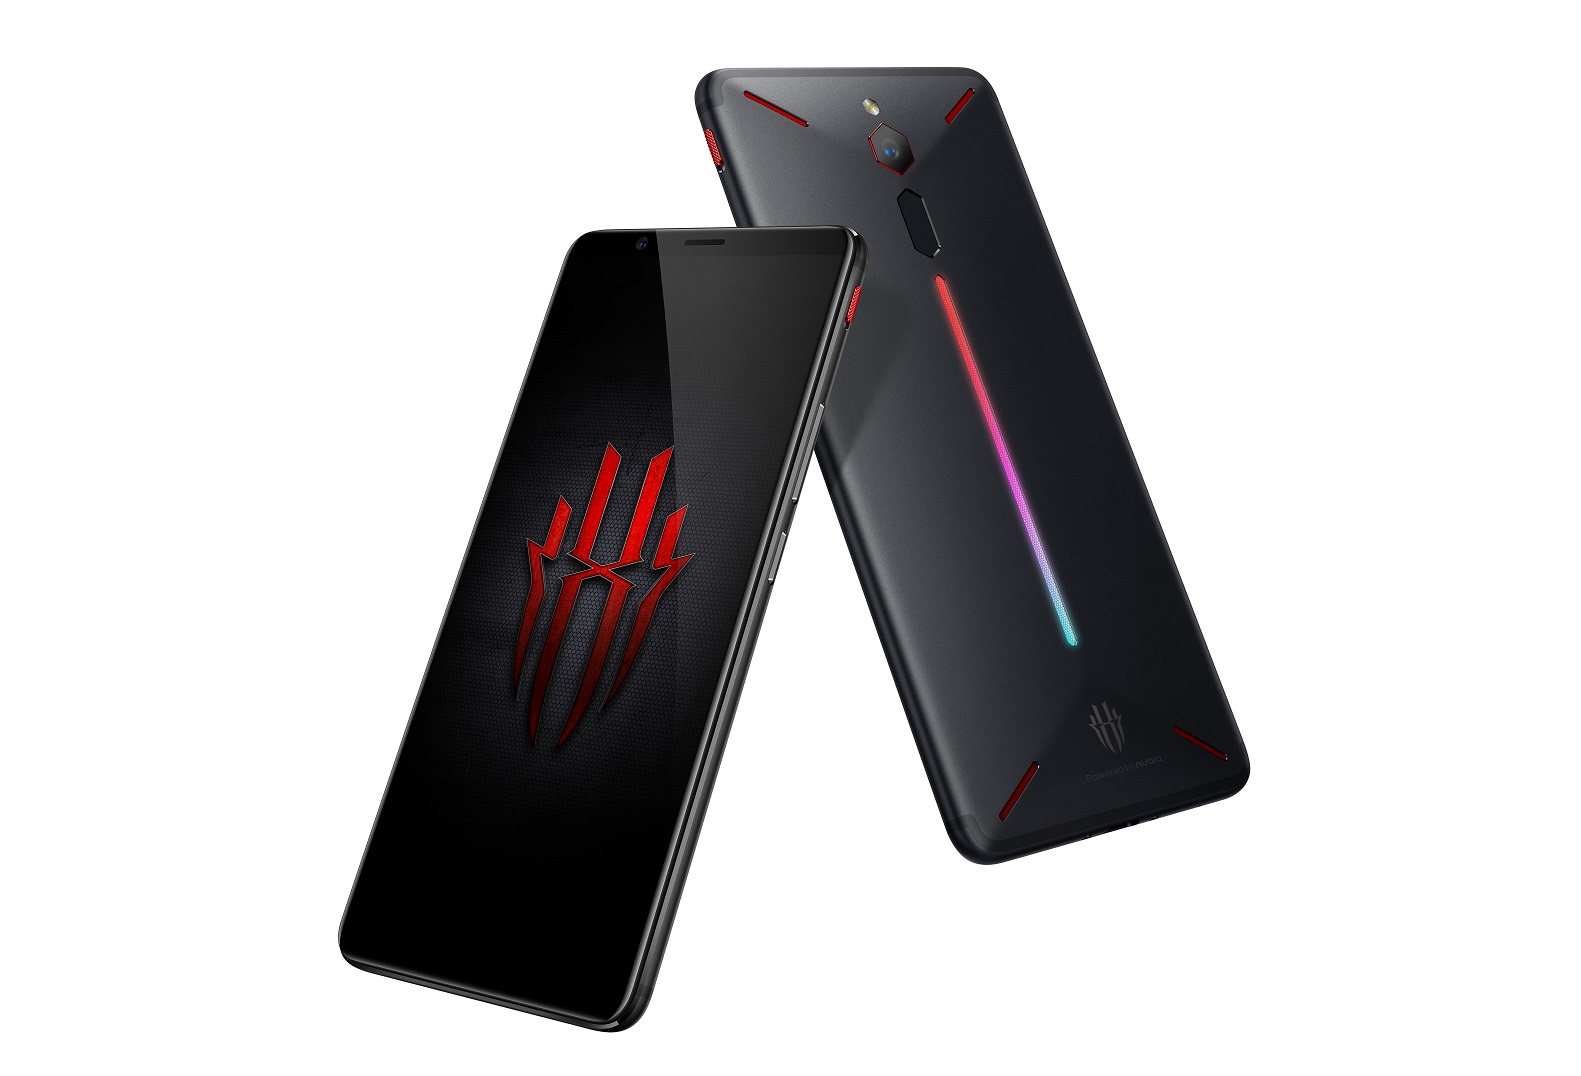 Nubia Launched Red Magic Gaming Smartphone with Air-Cooling